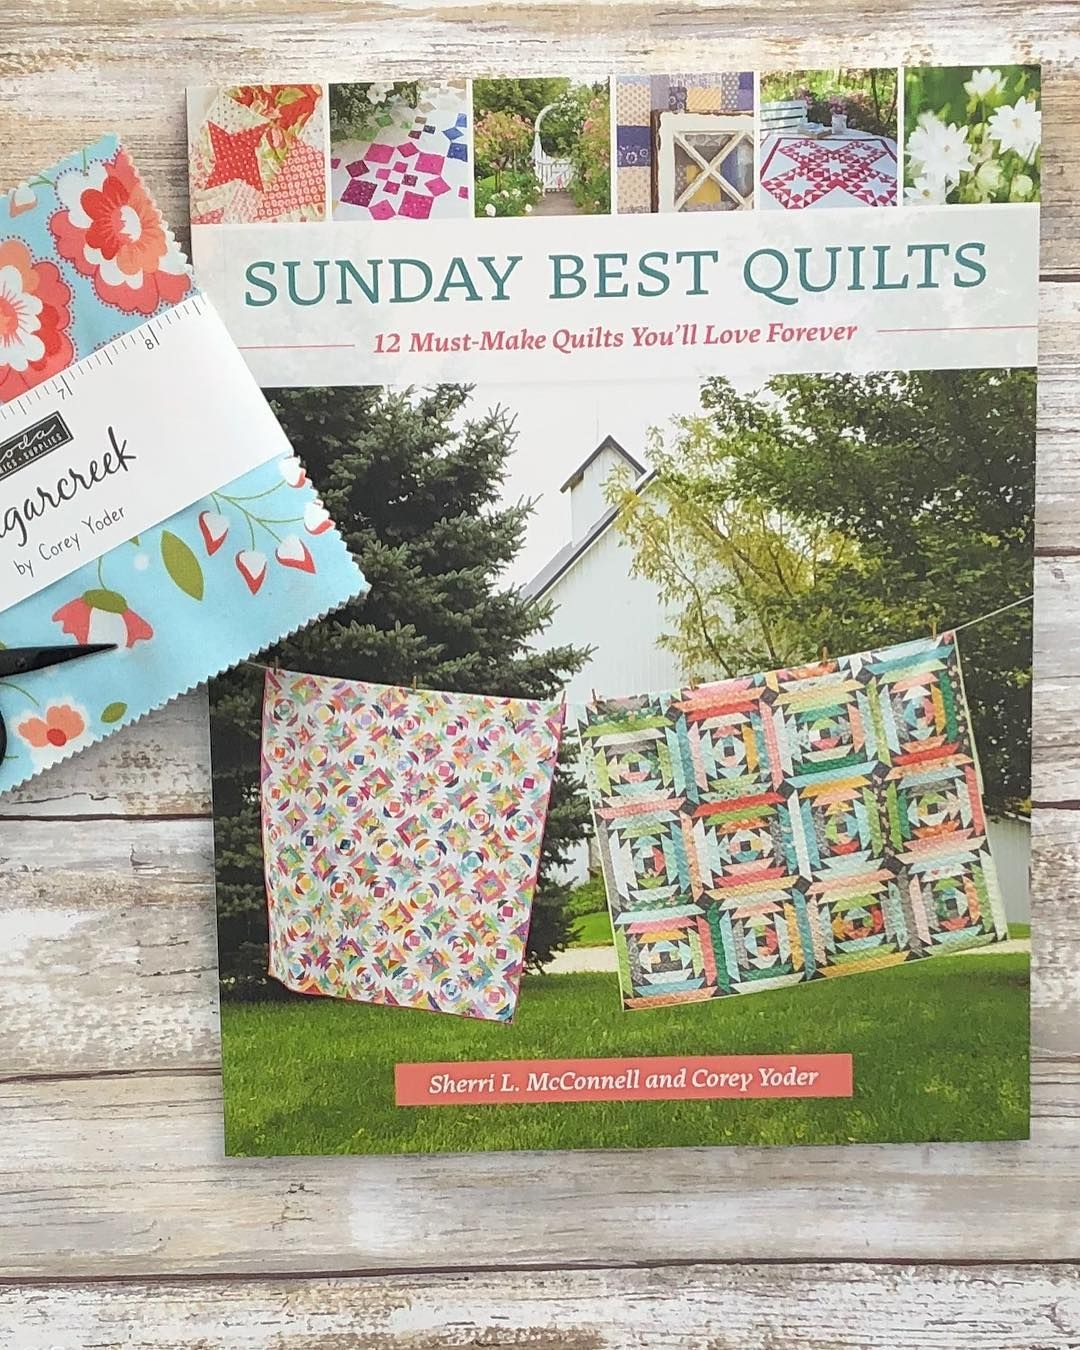 I was just talking about Sunday Best Quilts and now here